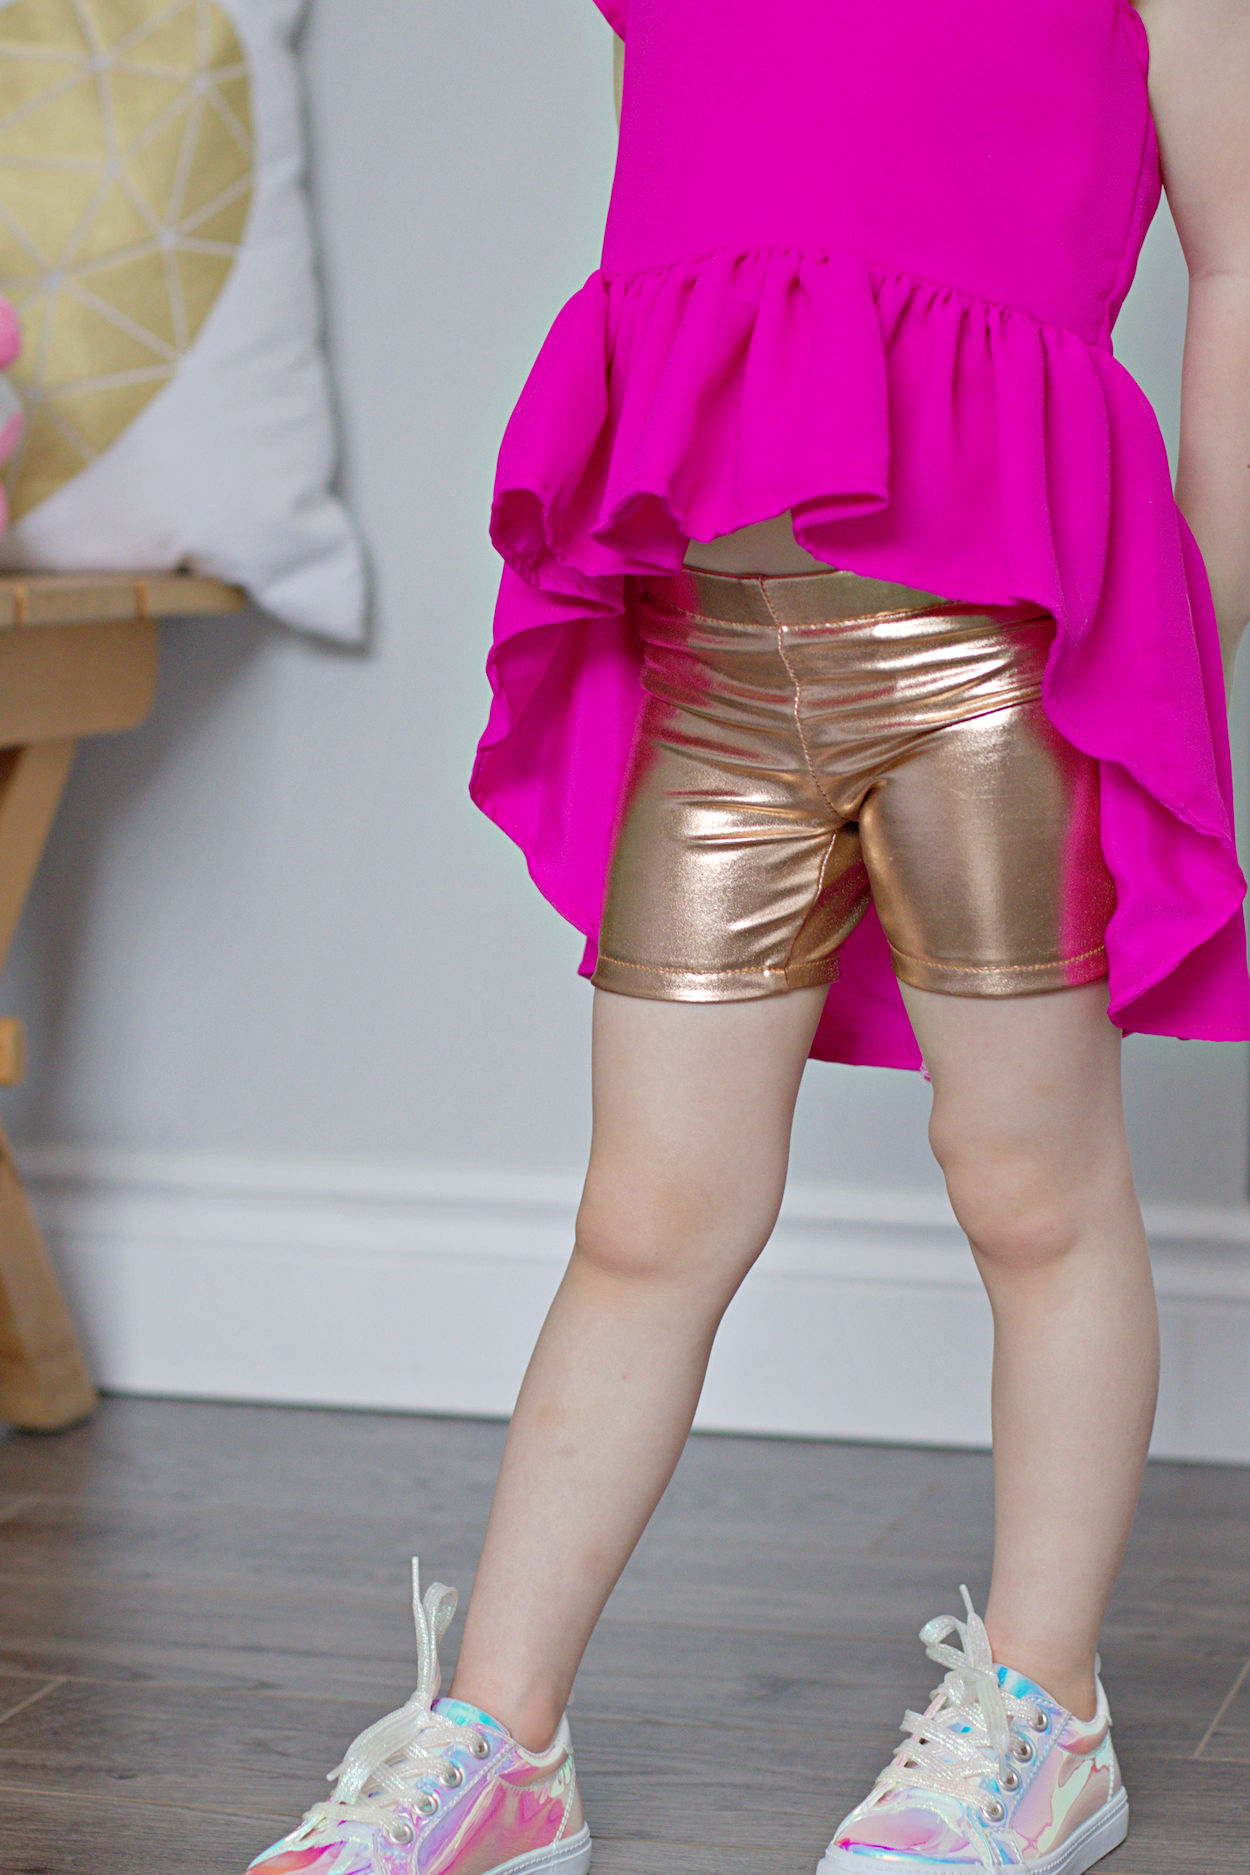 Rocky Shore tights for gymnastics or play. Shorts version with elastic waist for wearing under skirts.